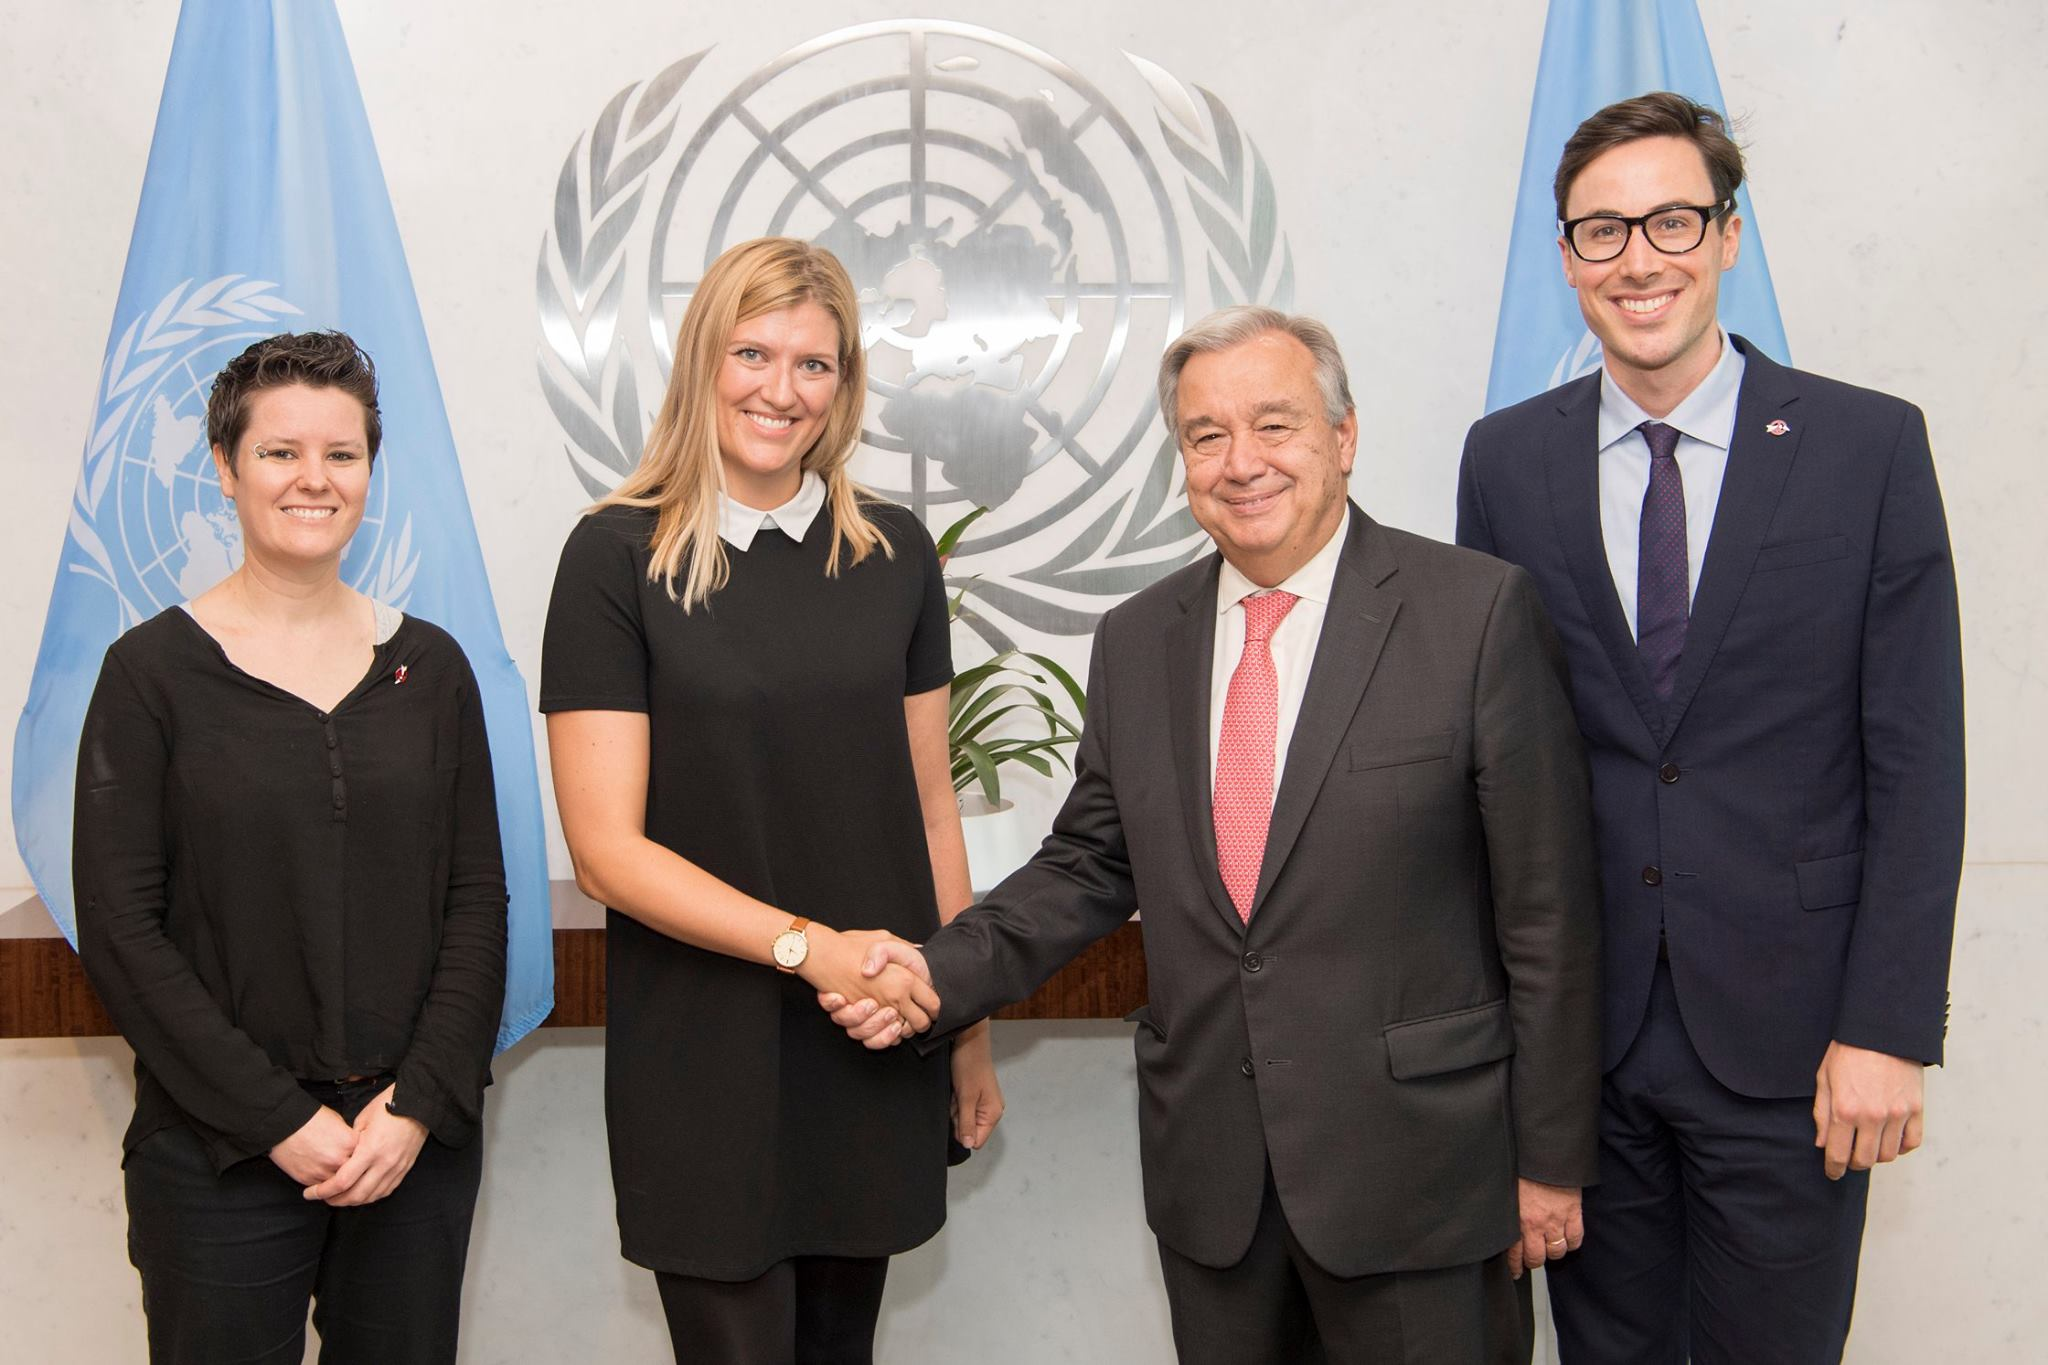 ICAN campaigners visit the UN Secretary-General